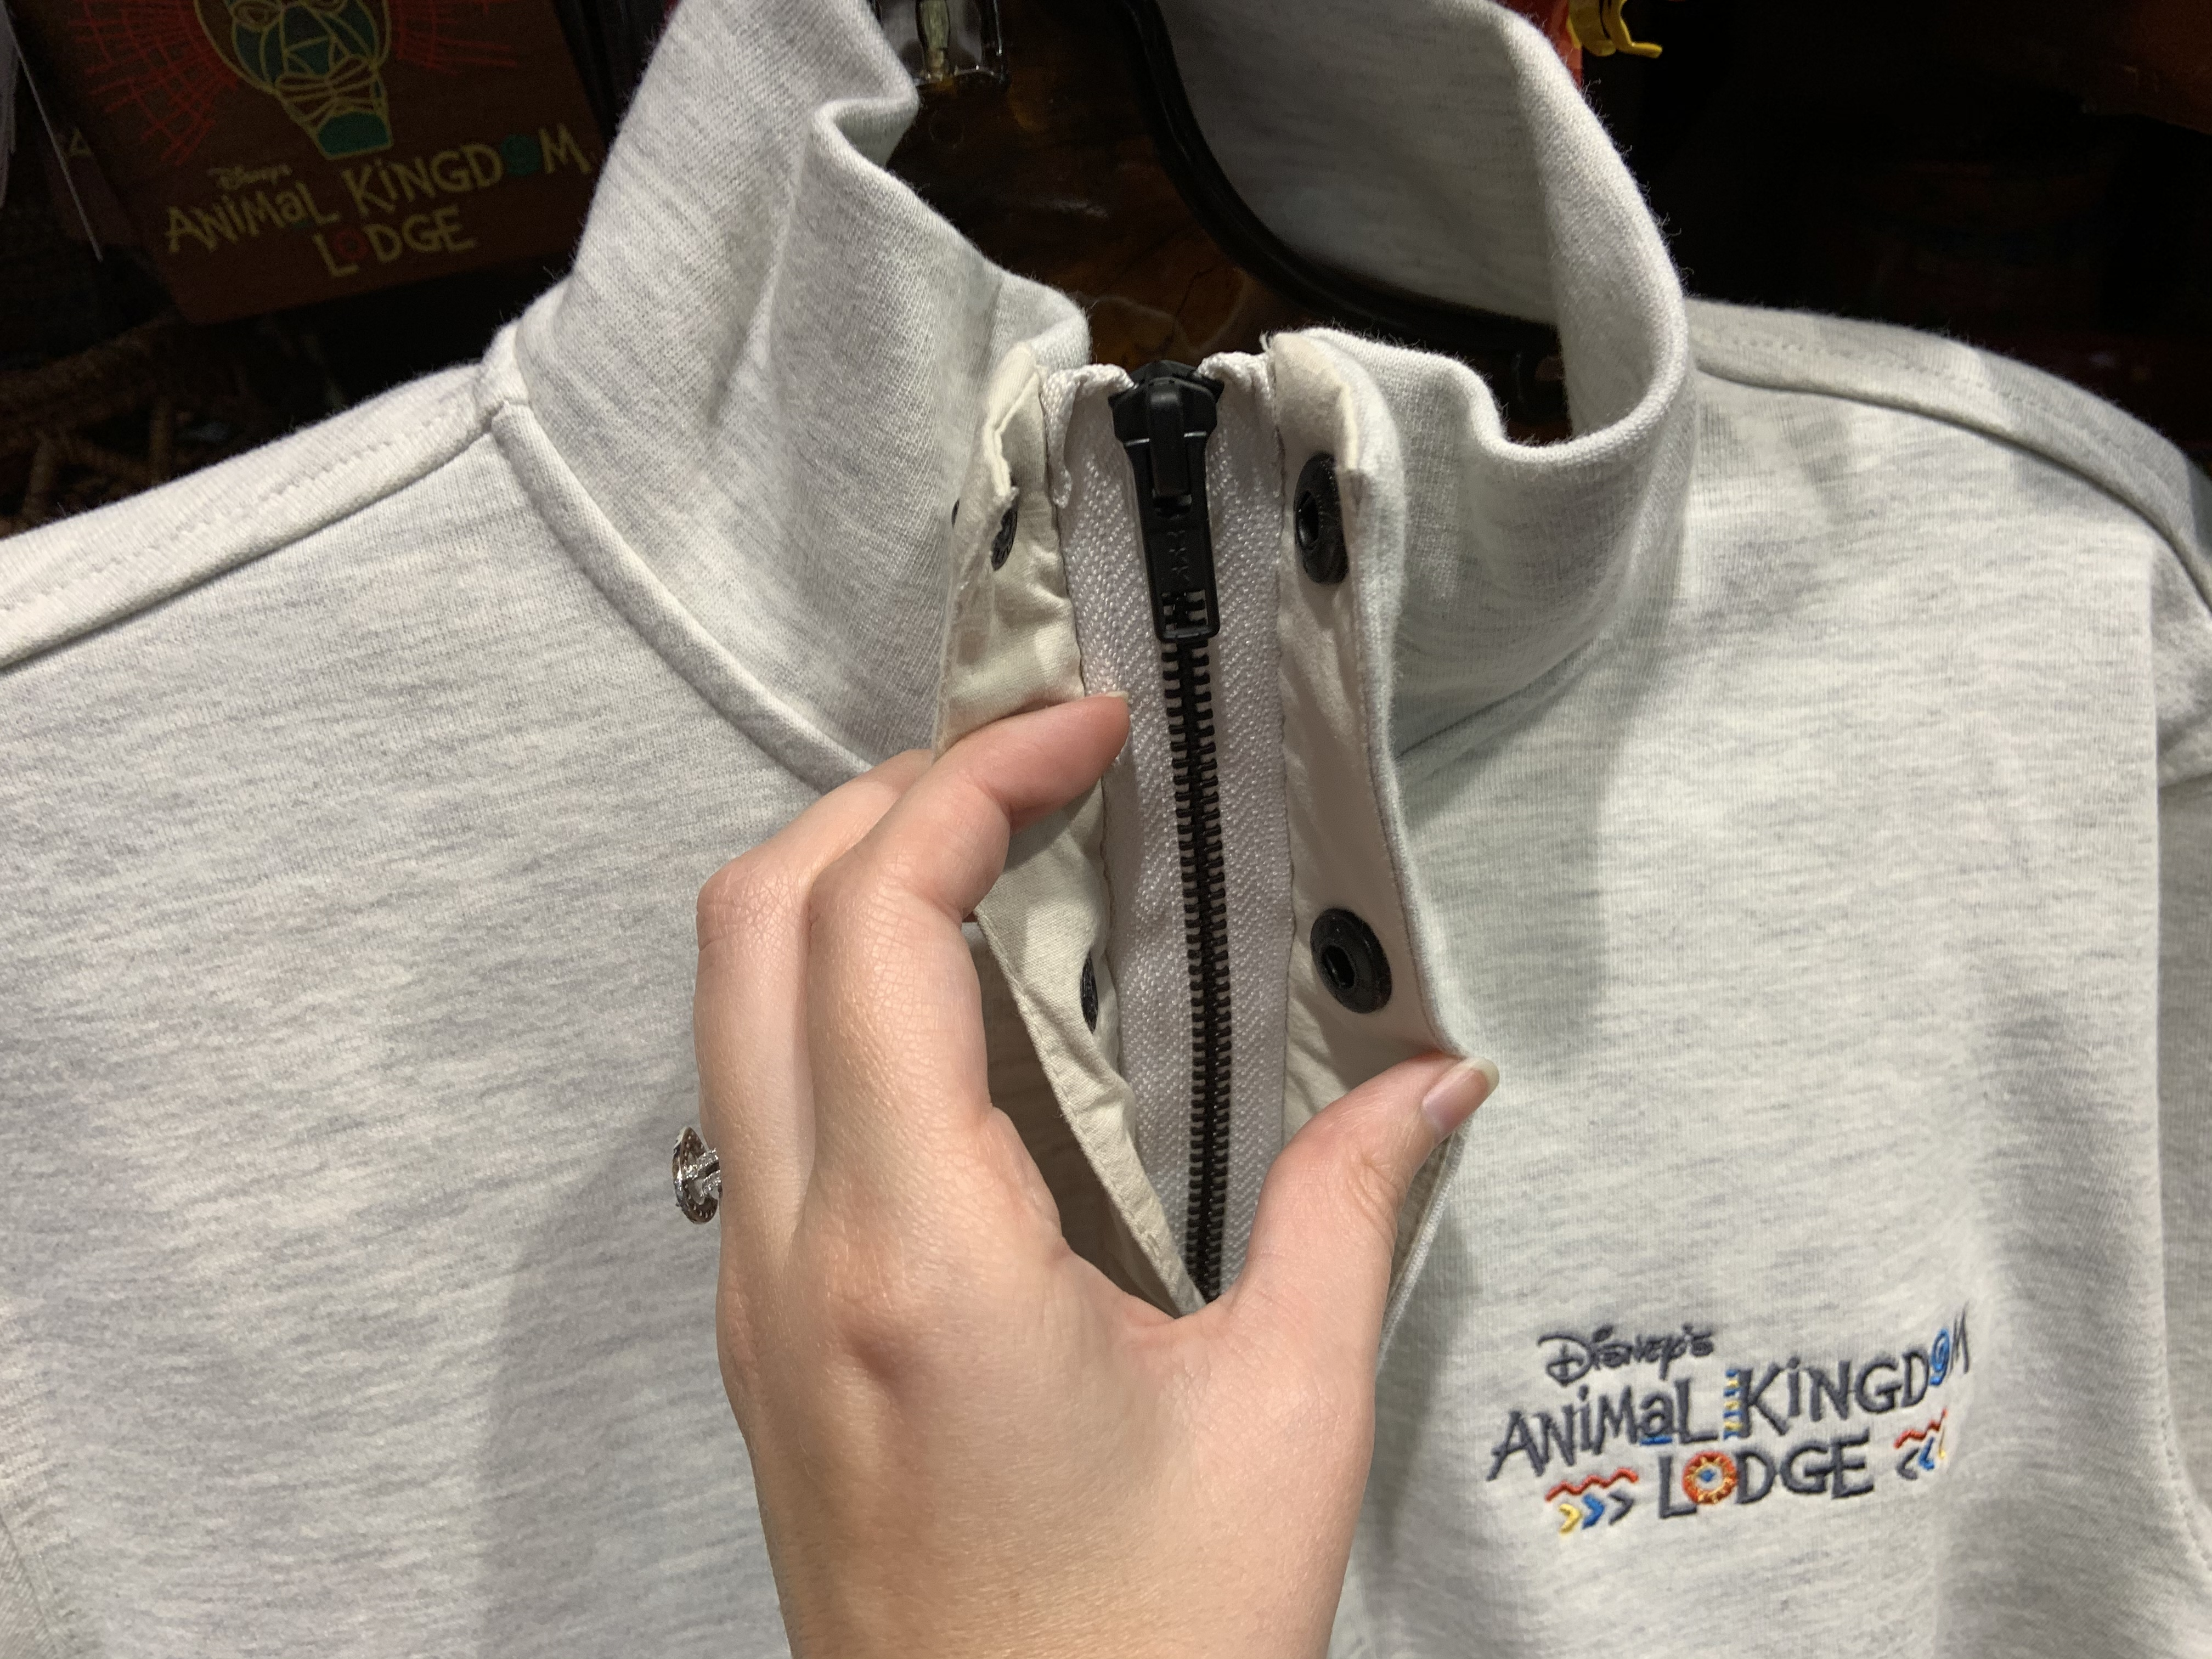 Animal Kingdom Lodge Merchandise 11/25/19 14